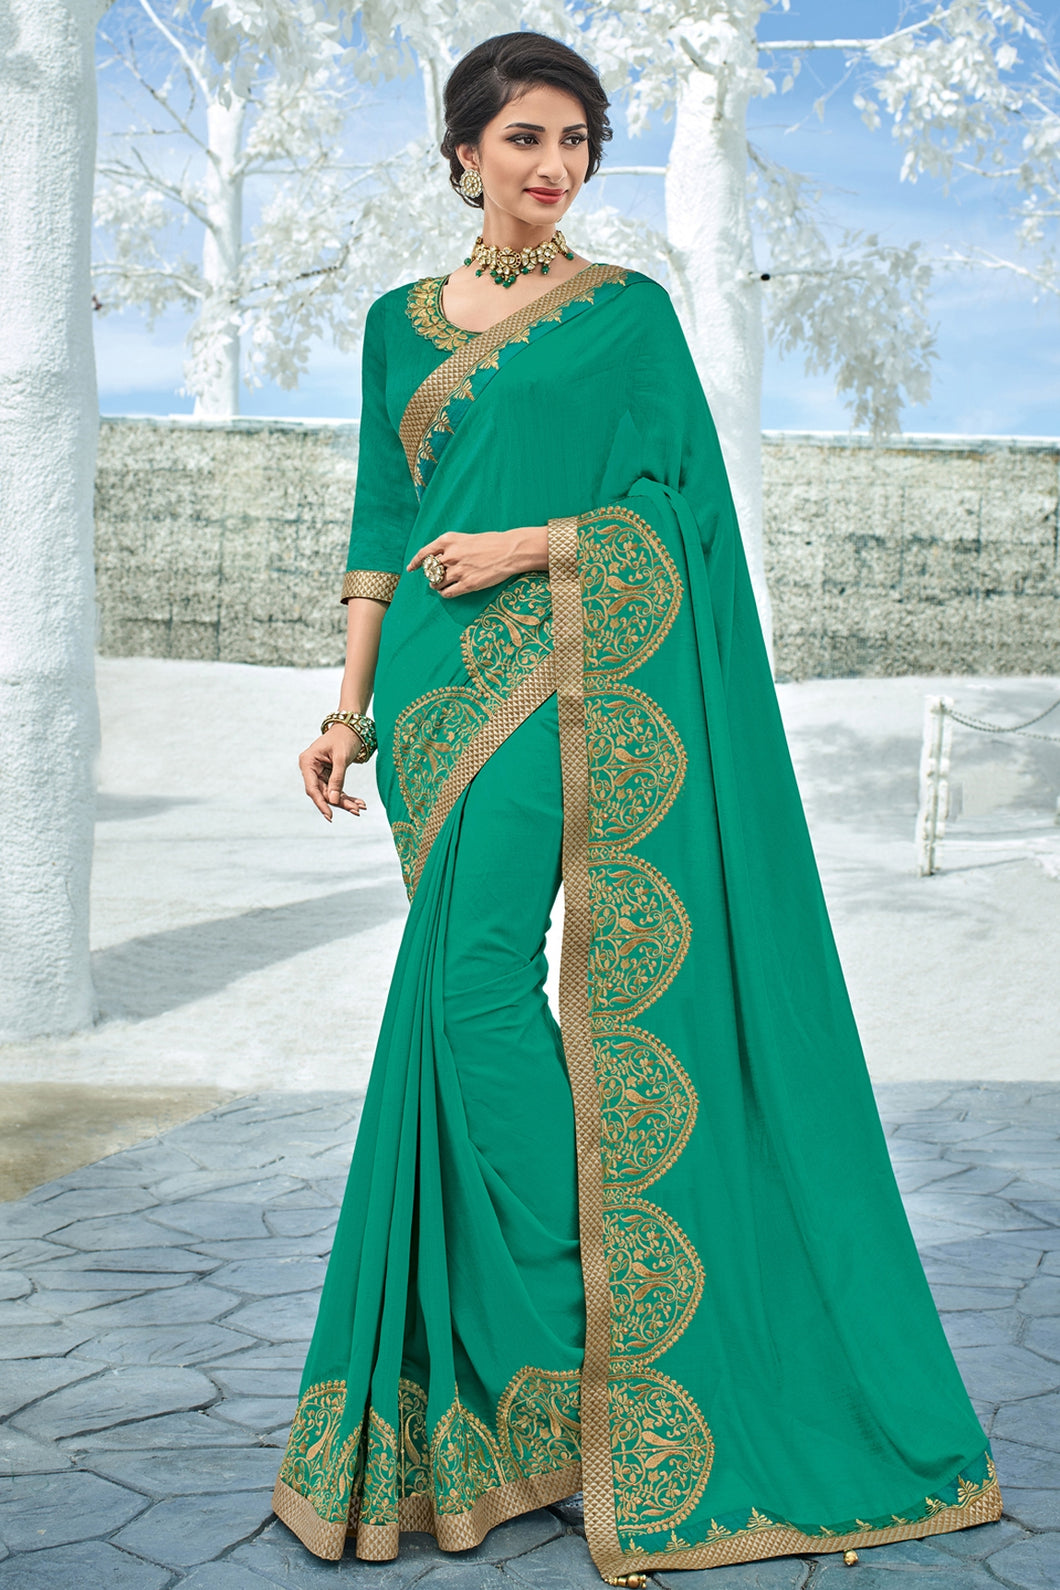 Bhelpuri Green Raw Silk Embroidered Lace Border Designer Party Wear Saree with Embroidered Raw Silk Blouse Piece